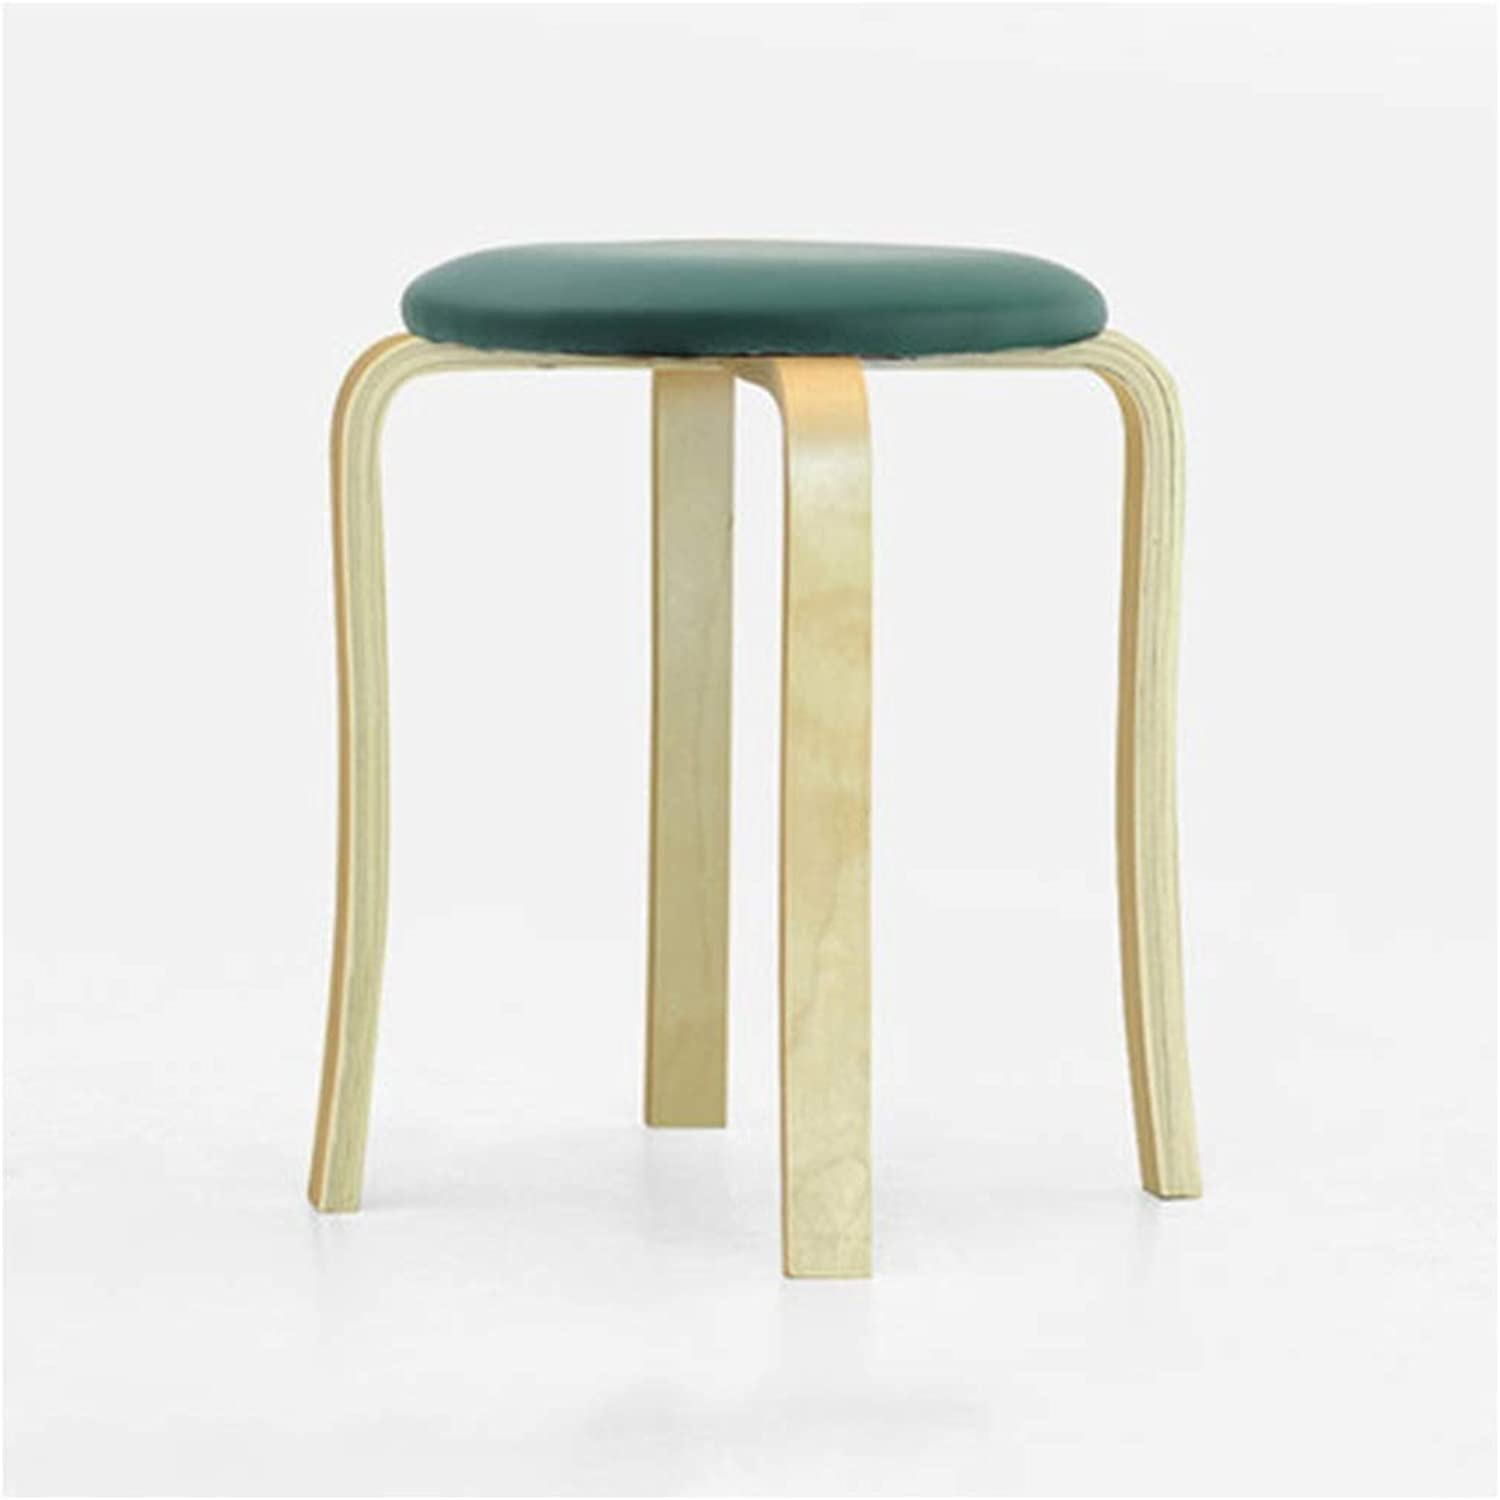 B.YDCM Wooden Bench- Home Solid Wood High Stool Fashion Creative Log Stool Simple Dining Table Stool Adult Stool - Wood Bench (color   F)